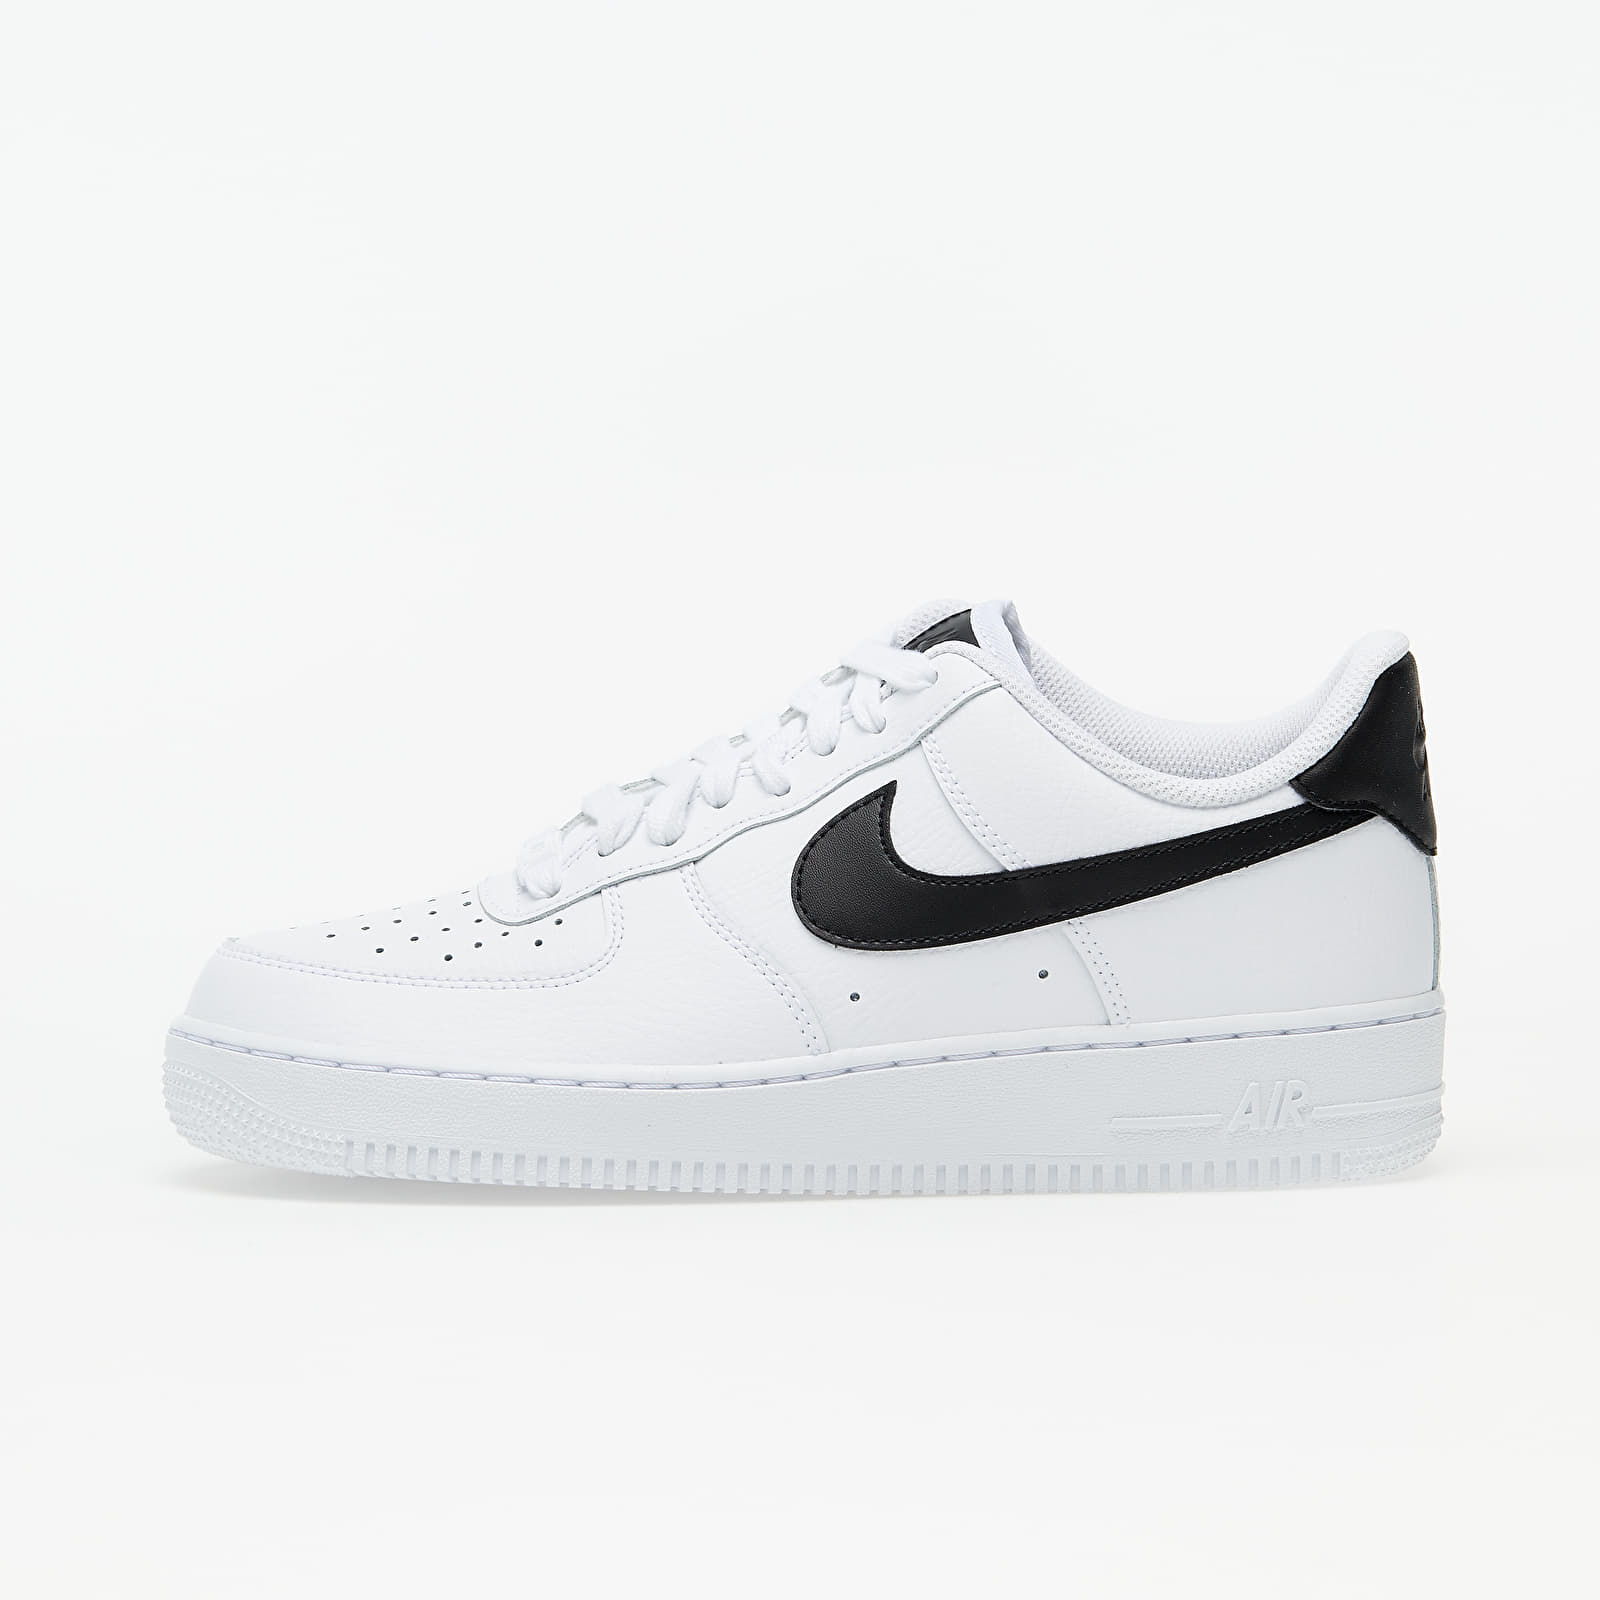 Ženske tenisice Nike WMNS Air Force 1 '07 White/ White-Black